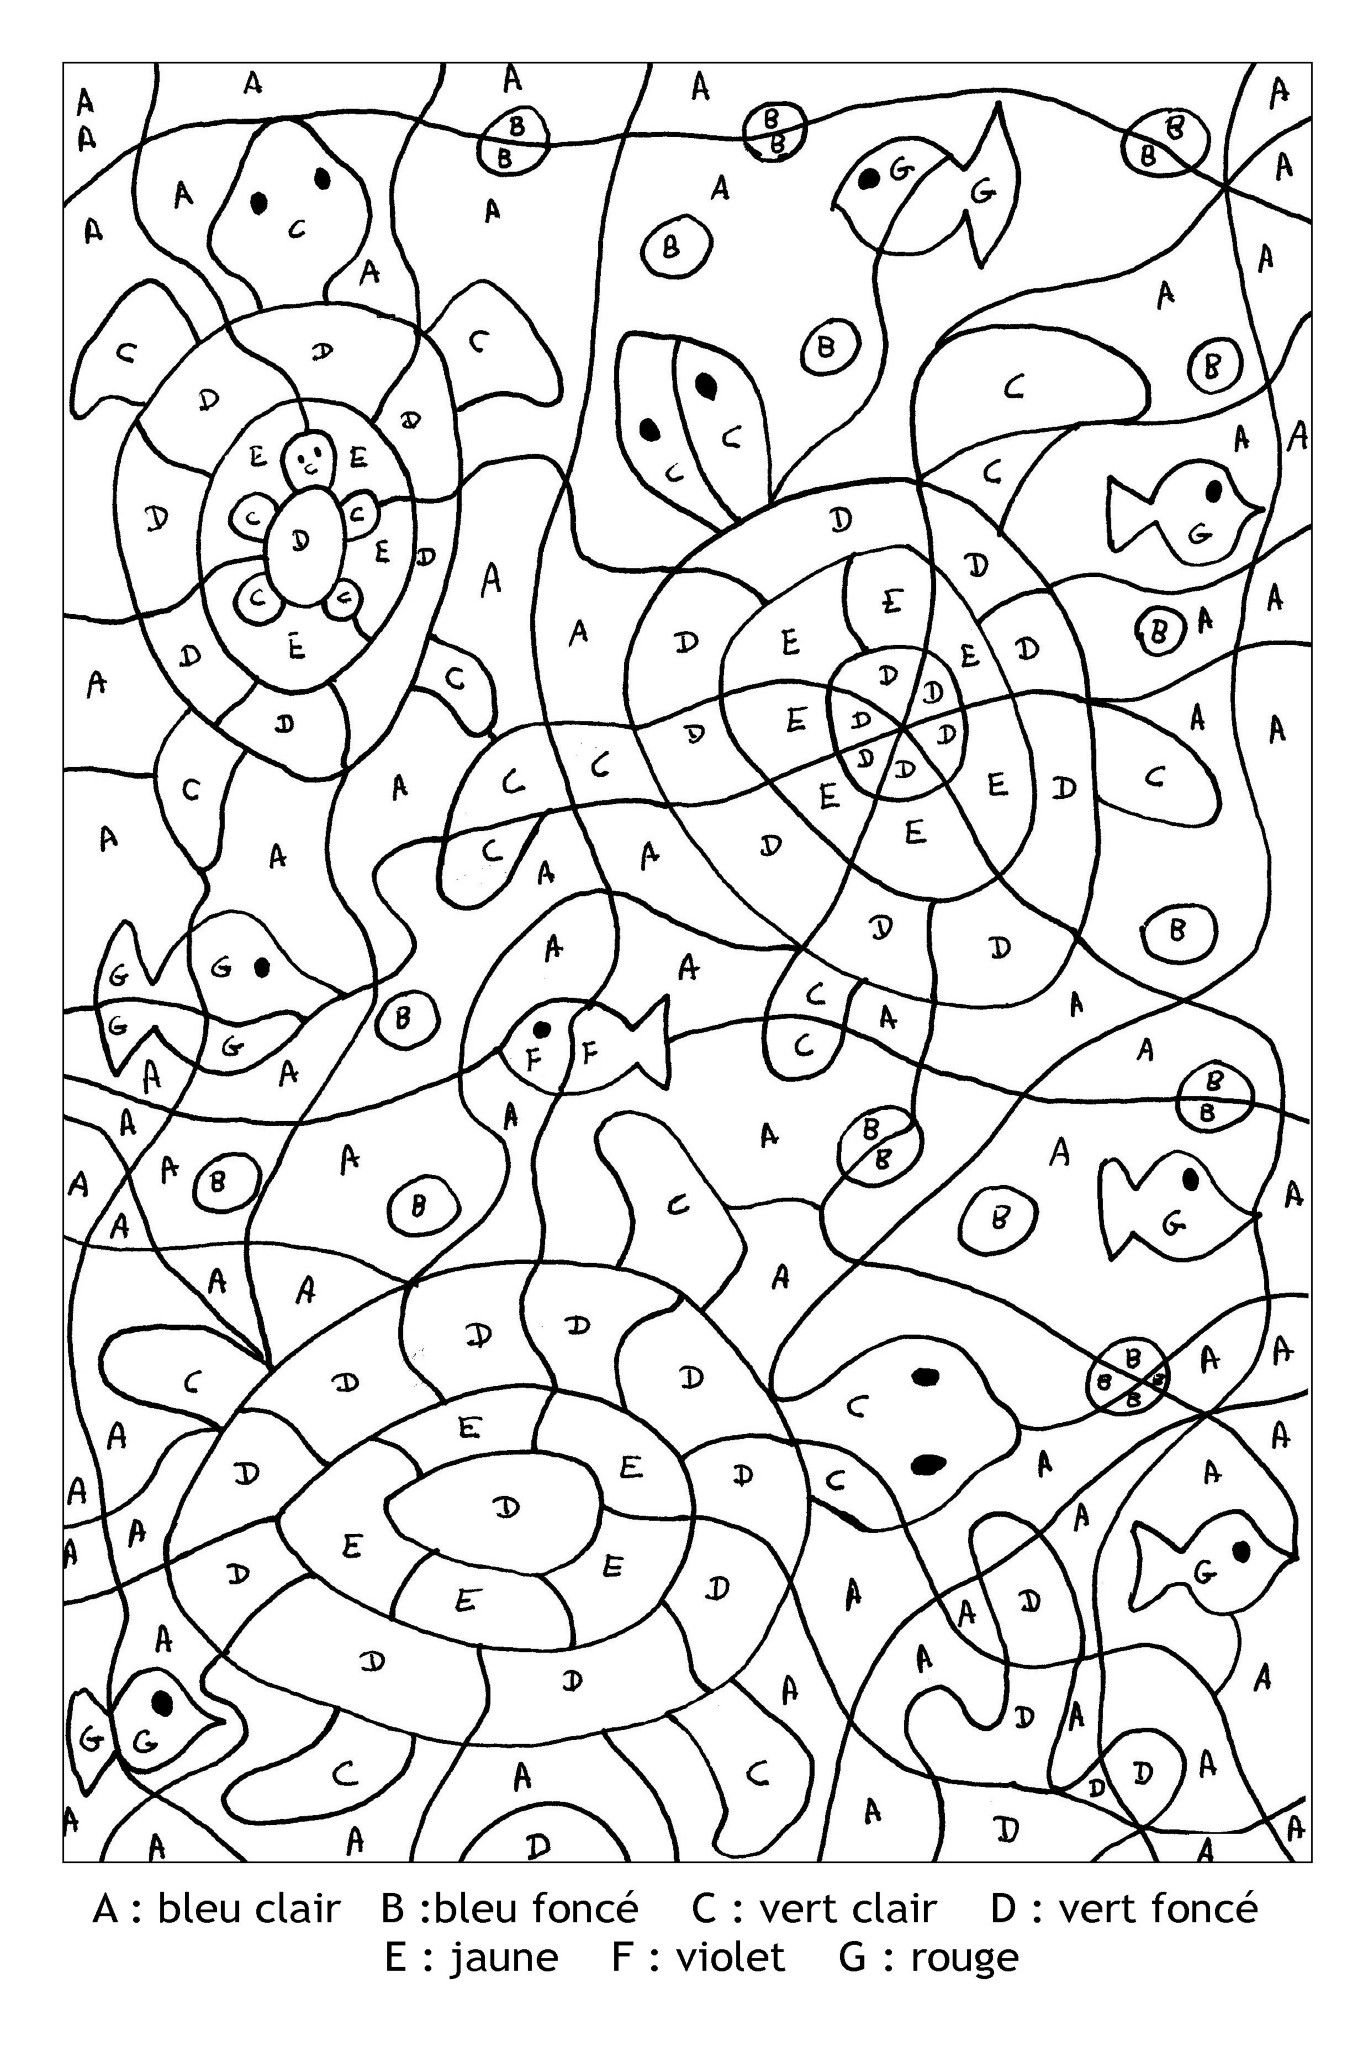 Pin By Christine Robillard On Coloriage Magique Coloring Pages Alphabet Coloring Pages Disney Coloring Pages